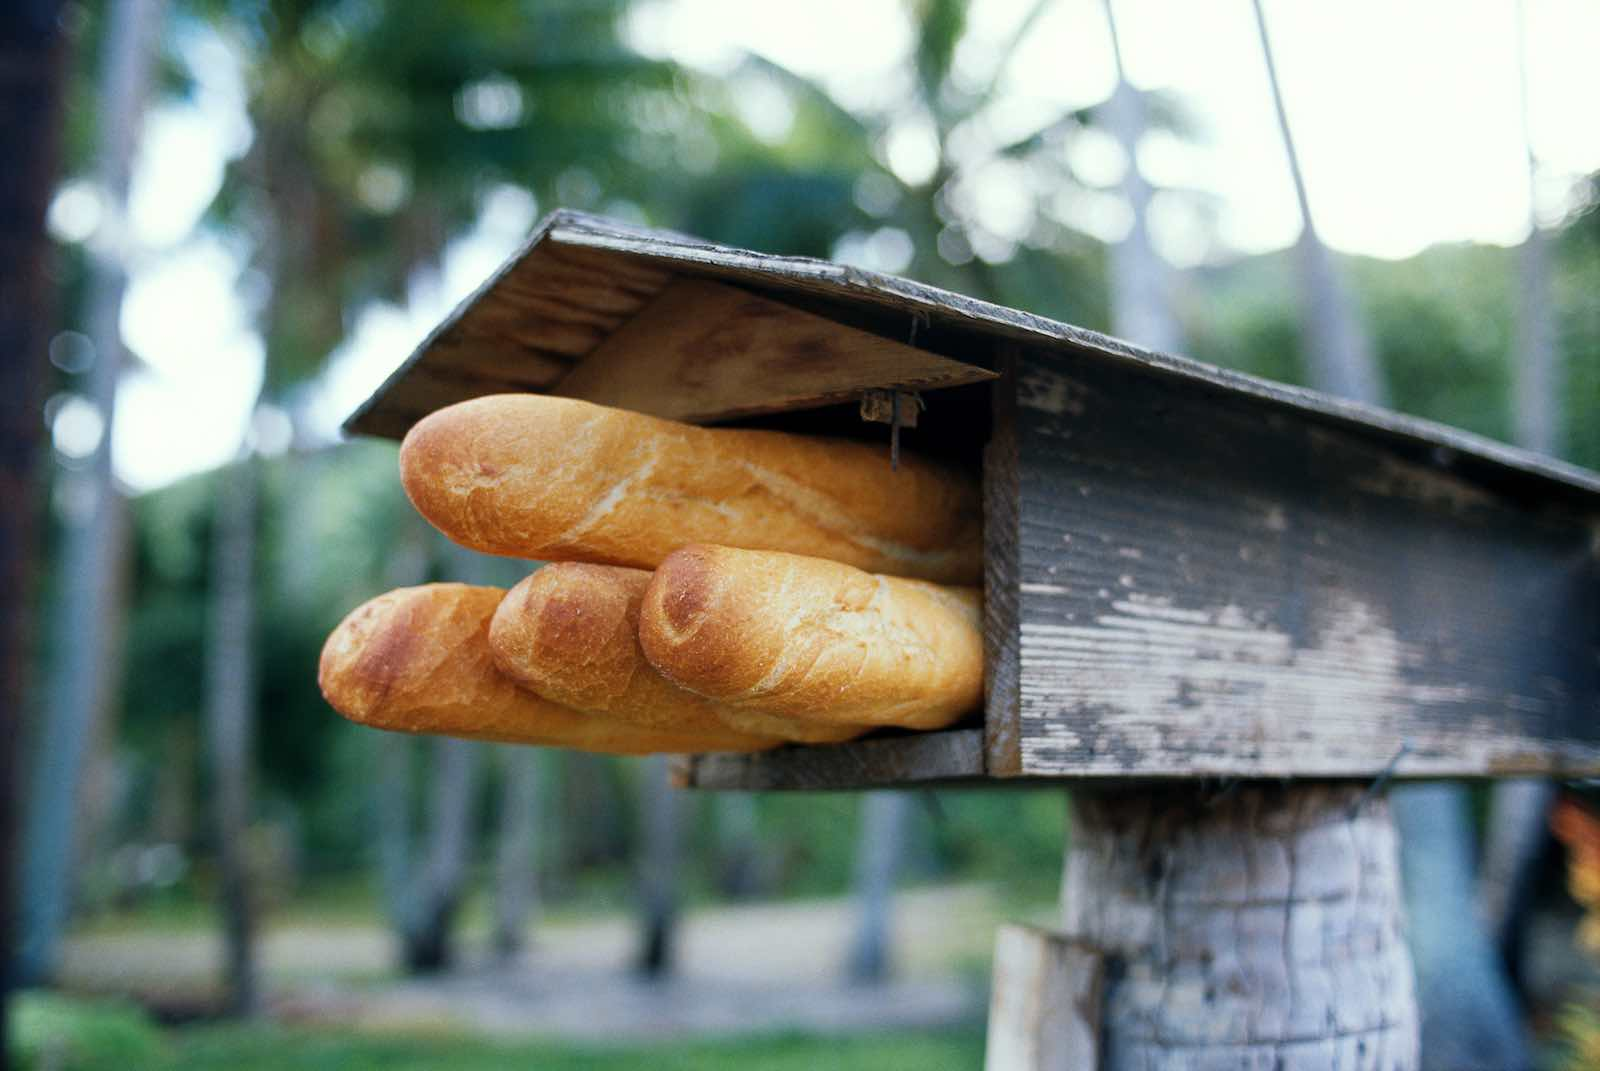 Tahitian lunch delivered by mailbox (Photo: Getty Images)